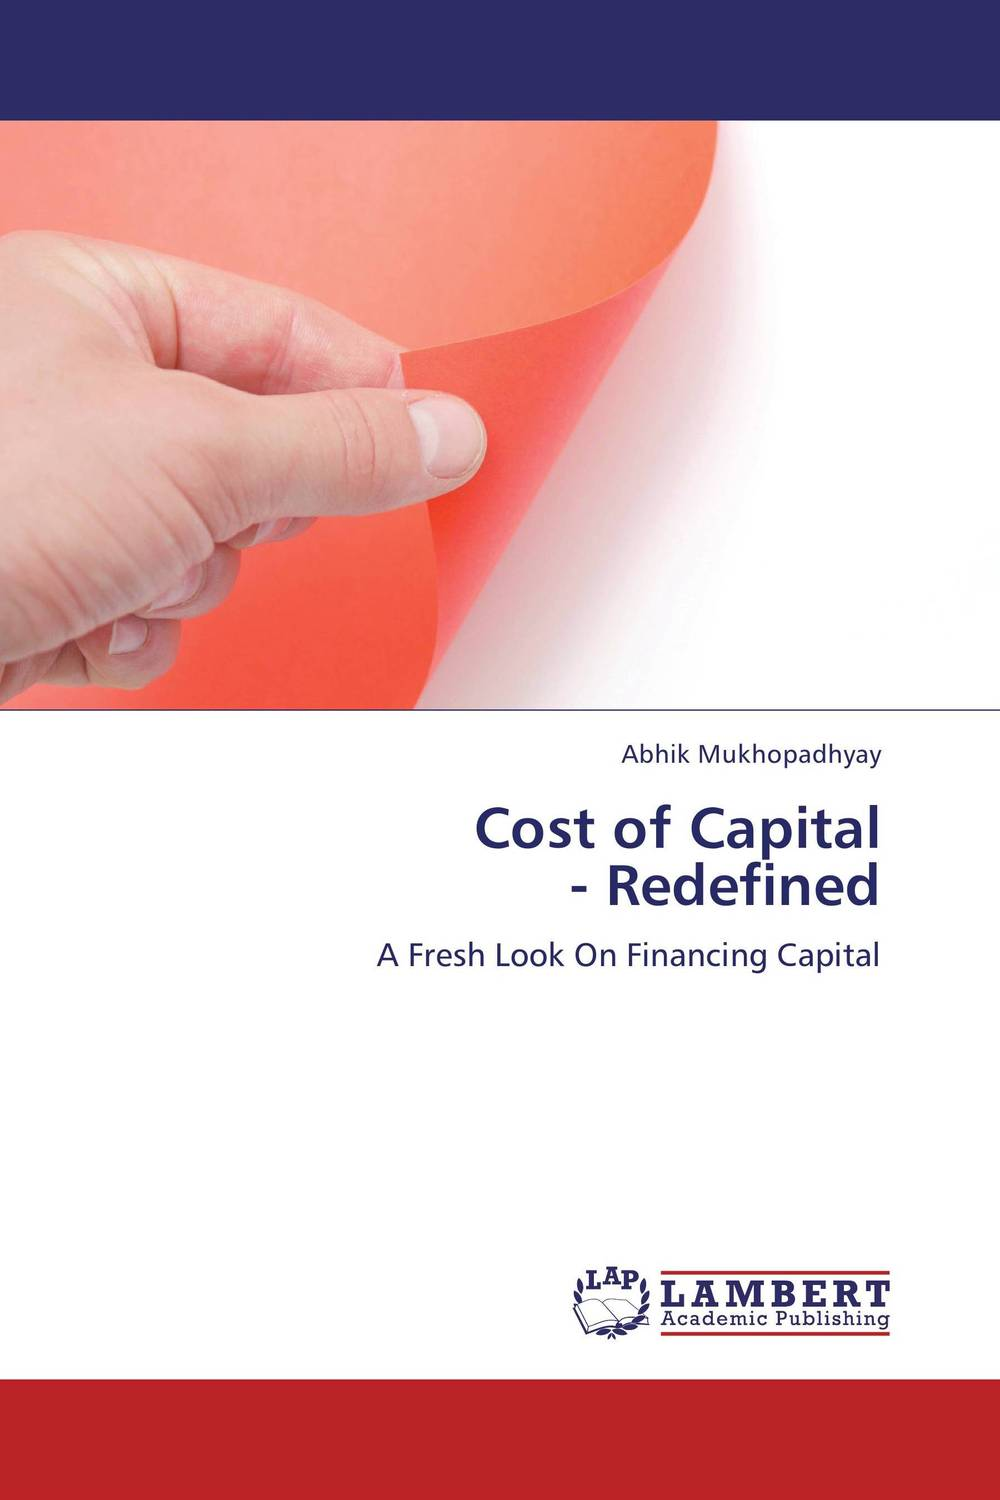 Cost of Capital - Redefined